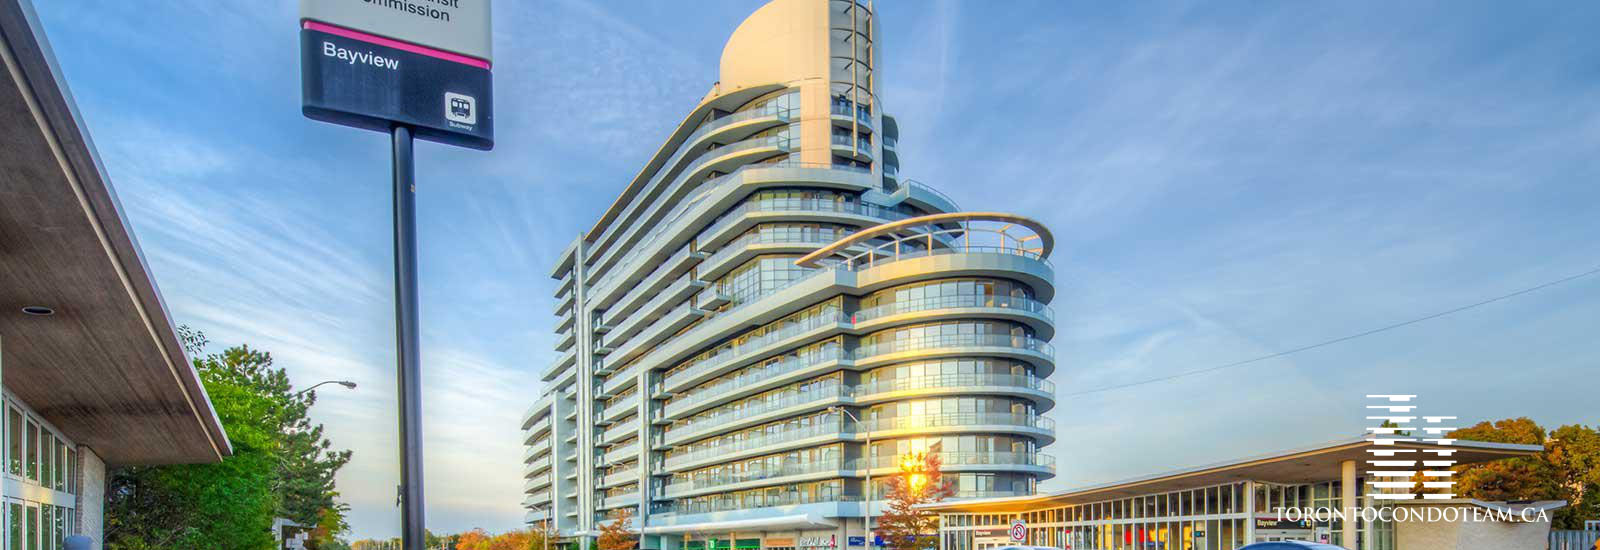 2885 Bayview Avenue Condos For Sale